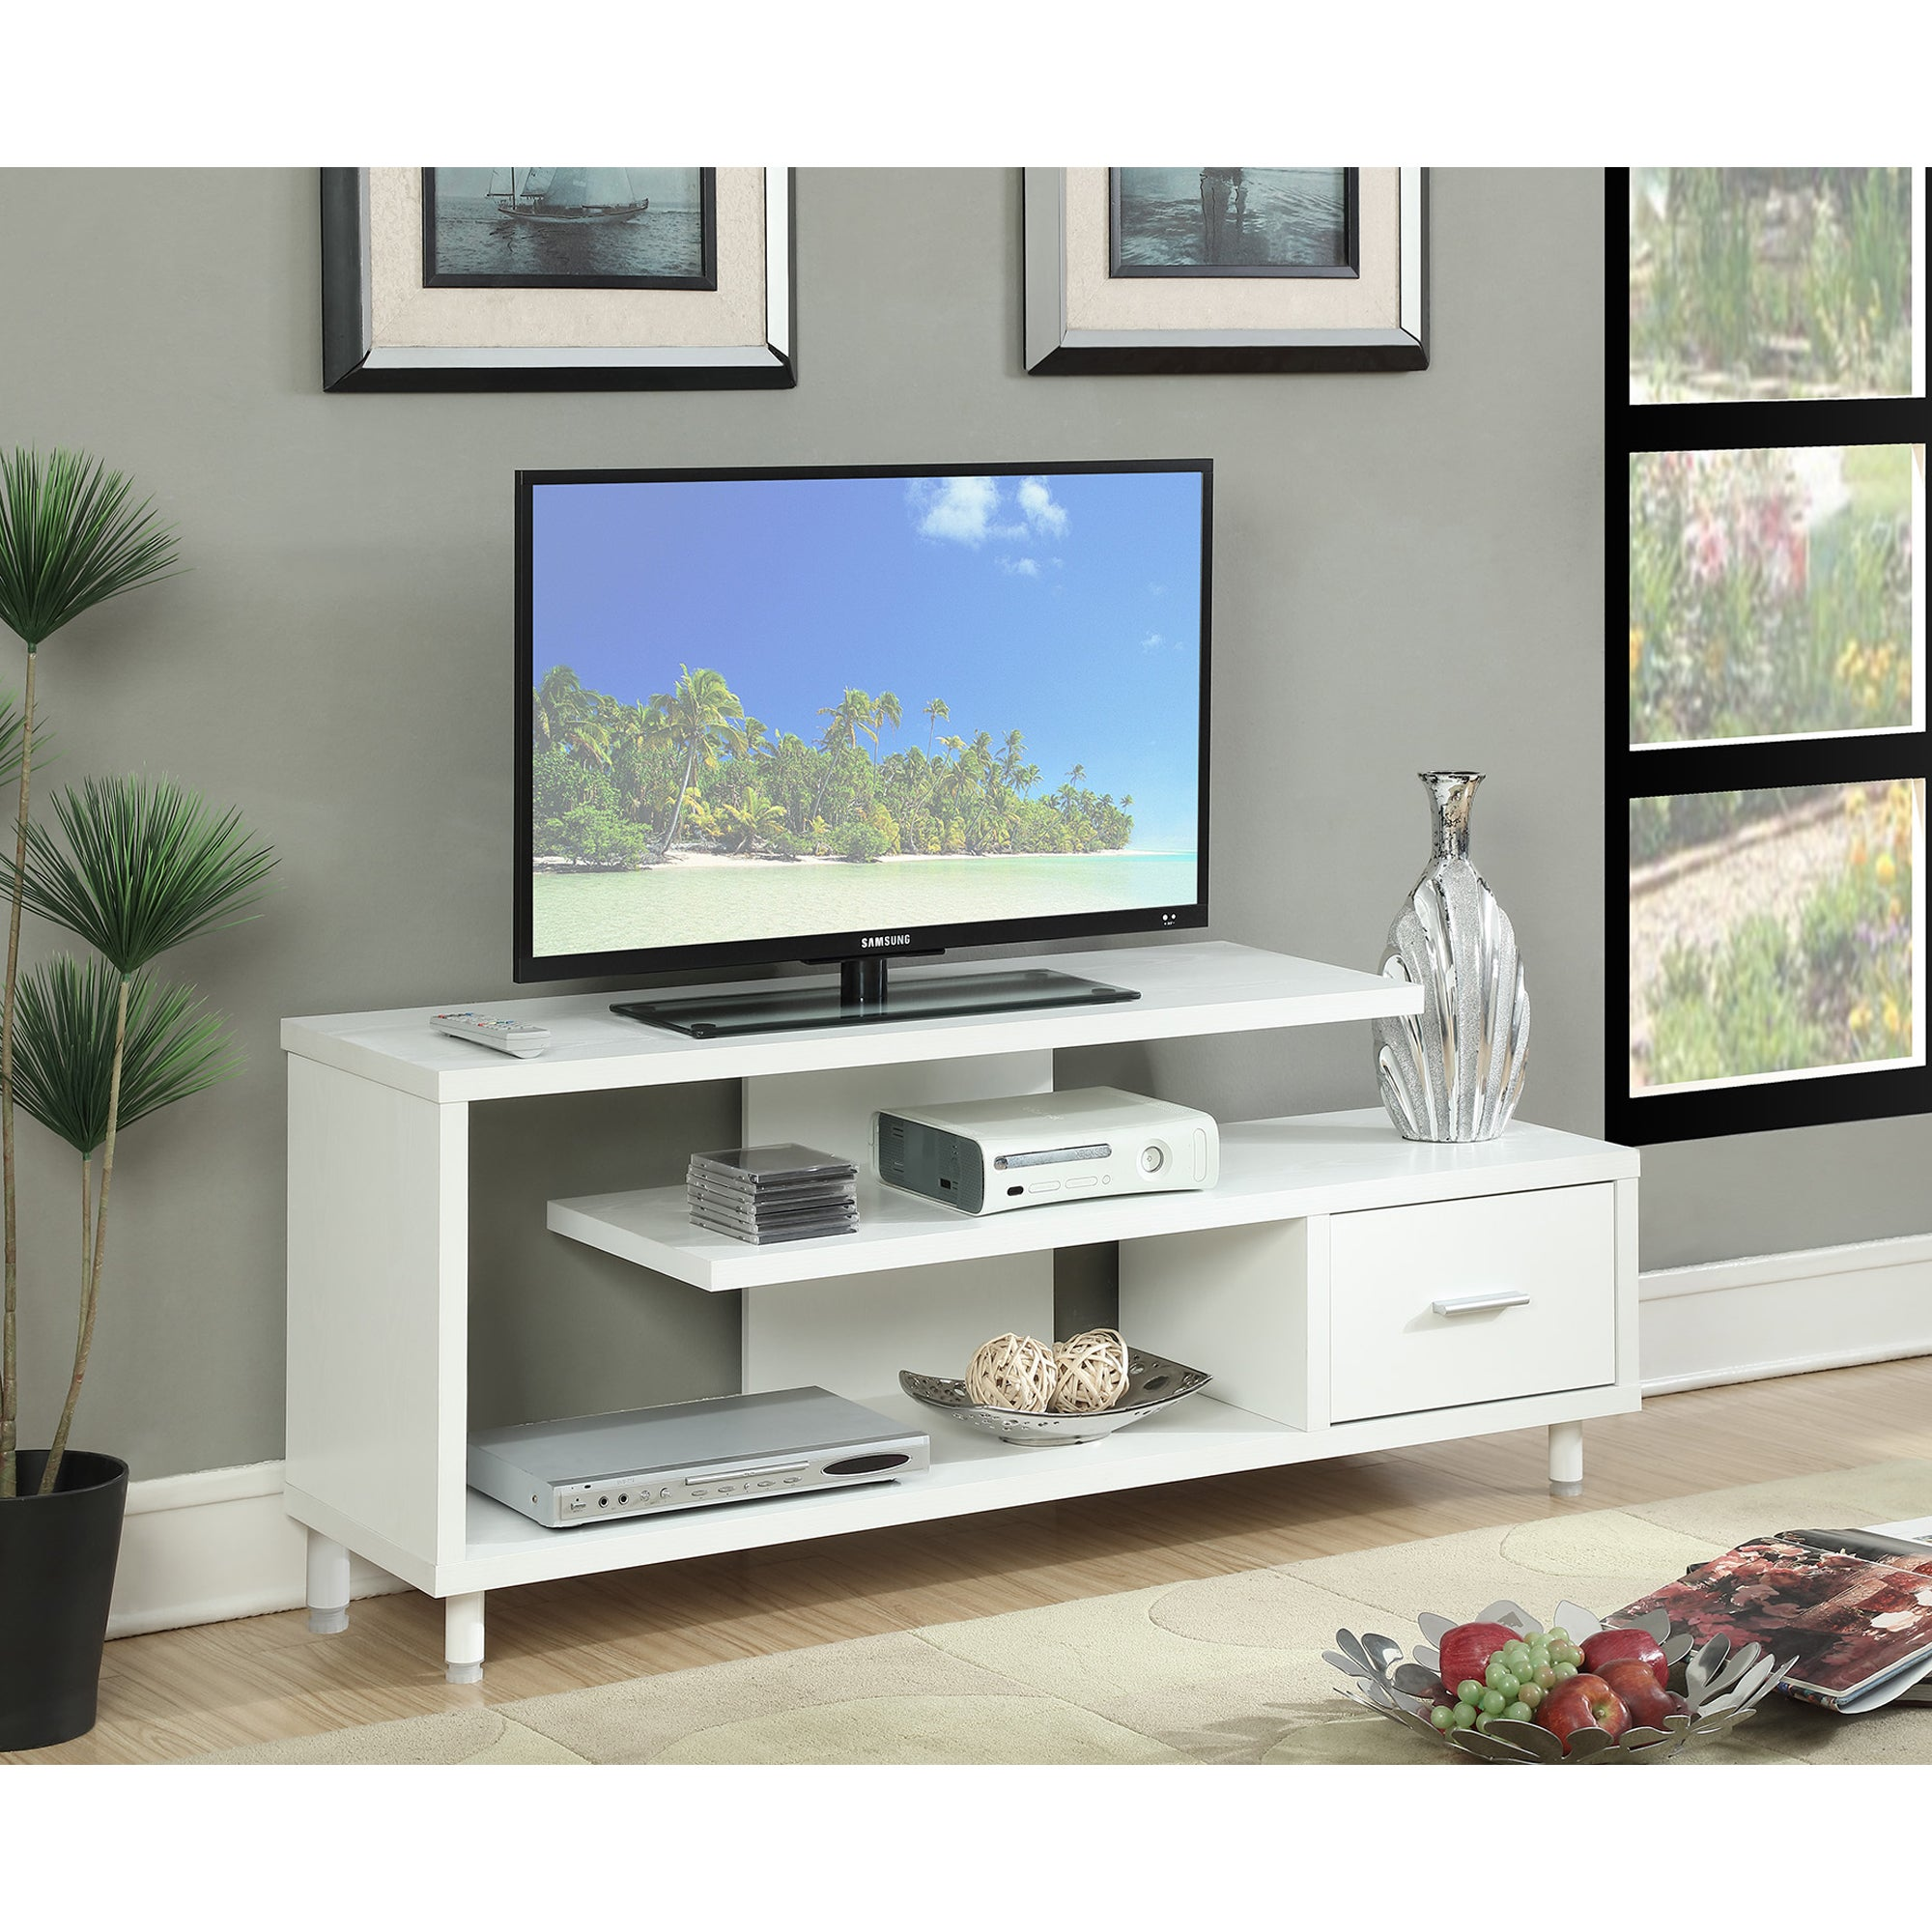 Modern Contemporary TV Stands Entertainment Centers For Less